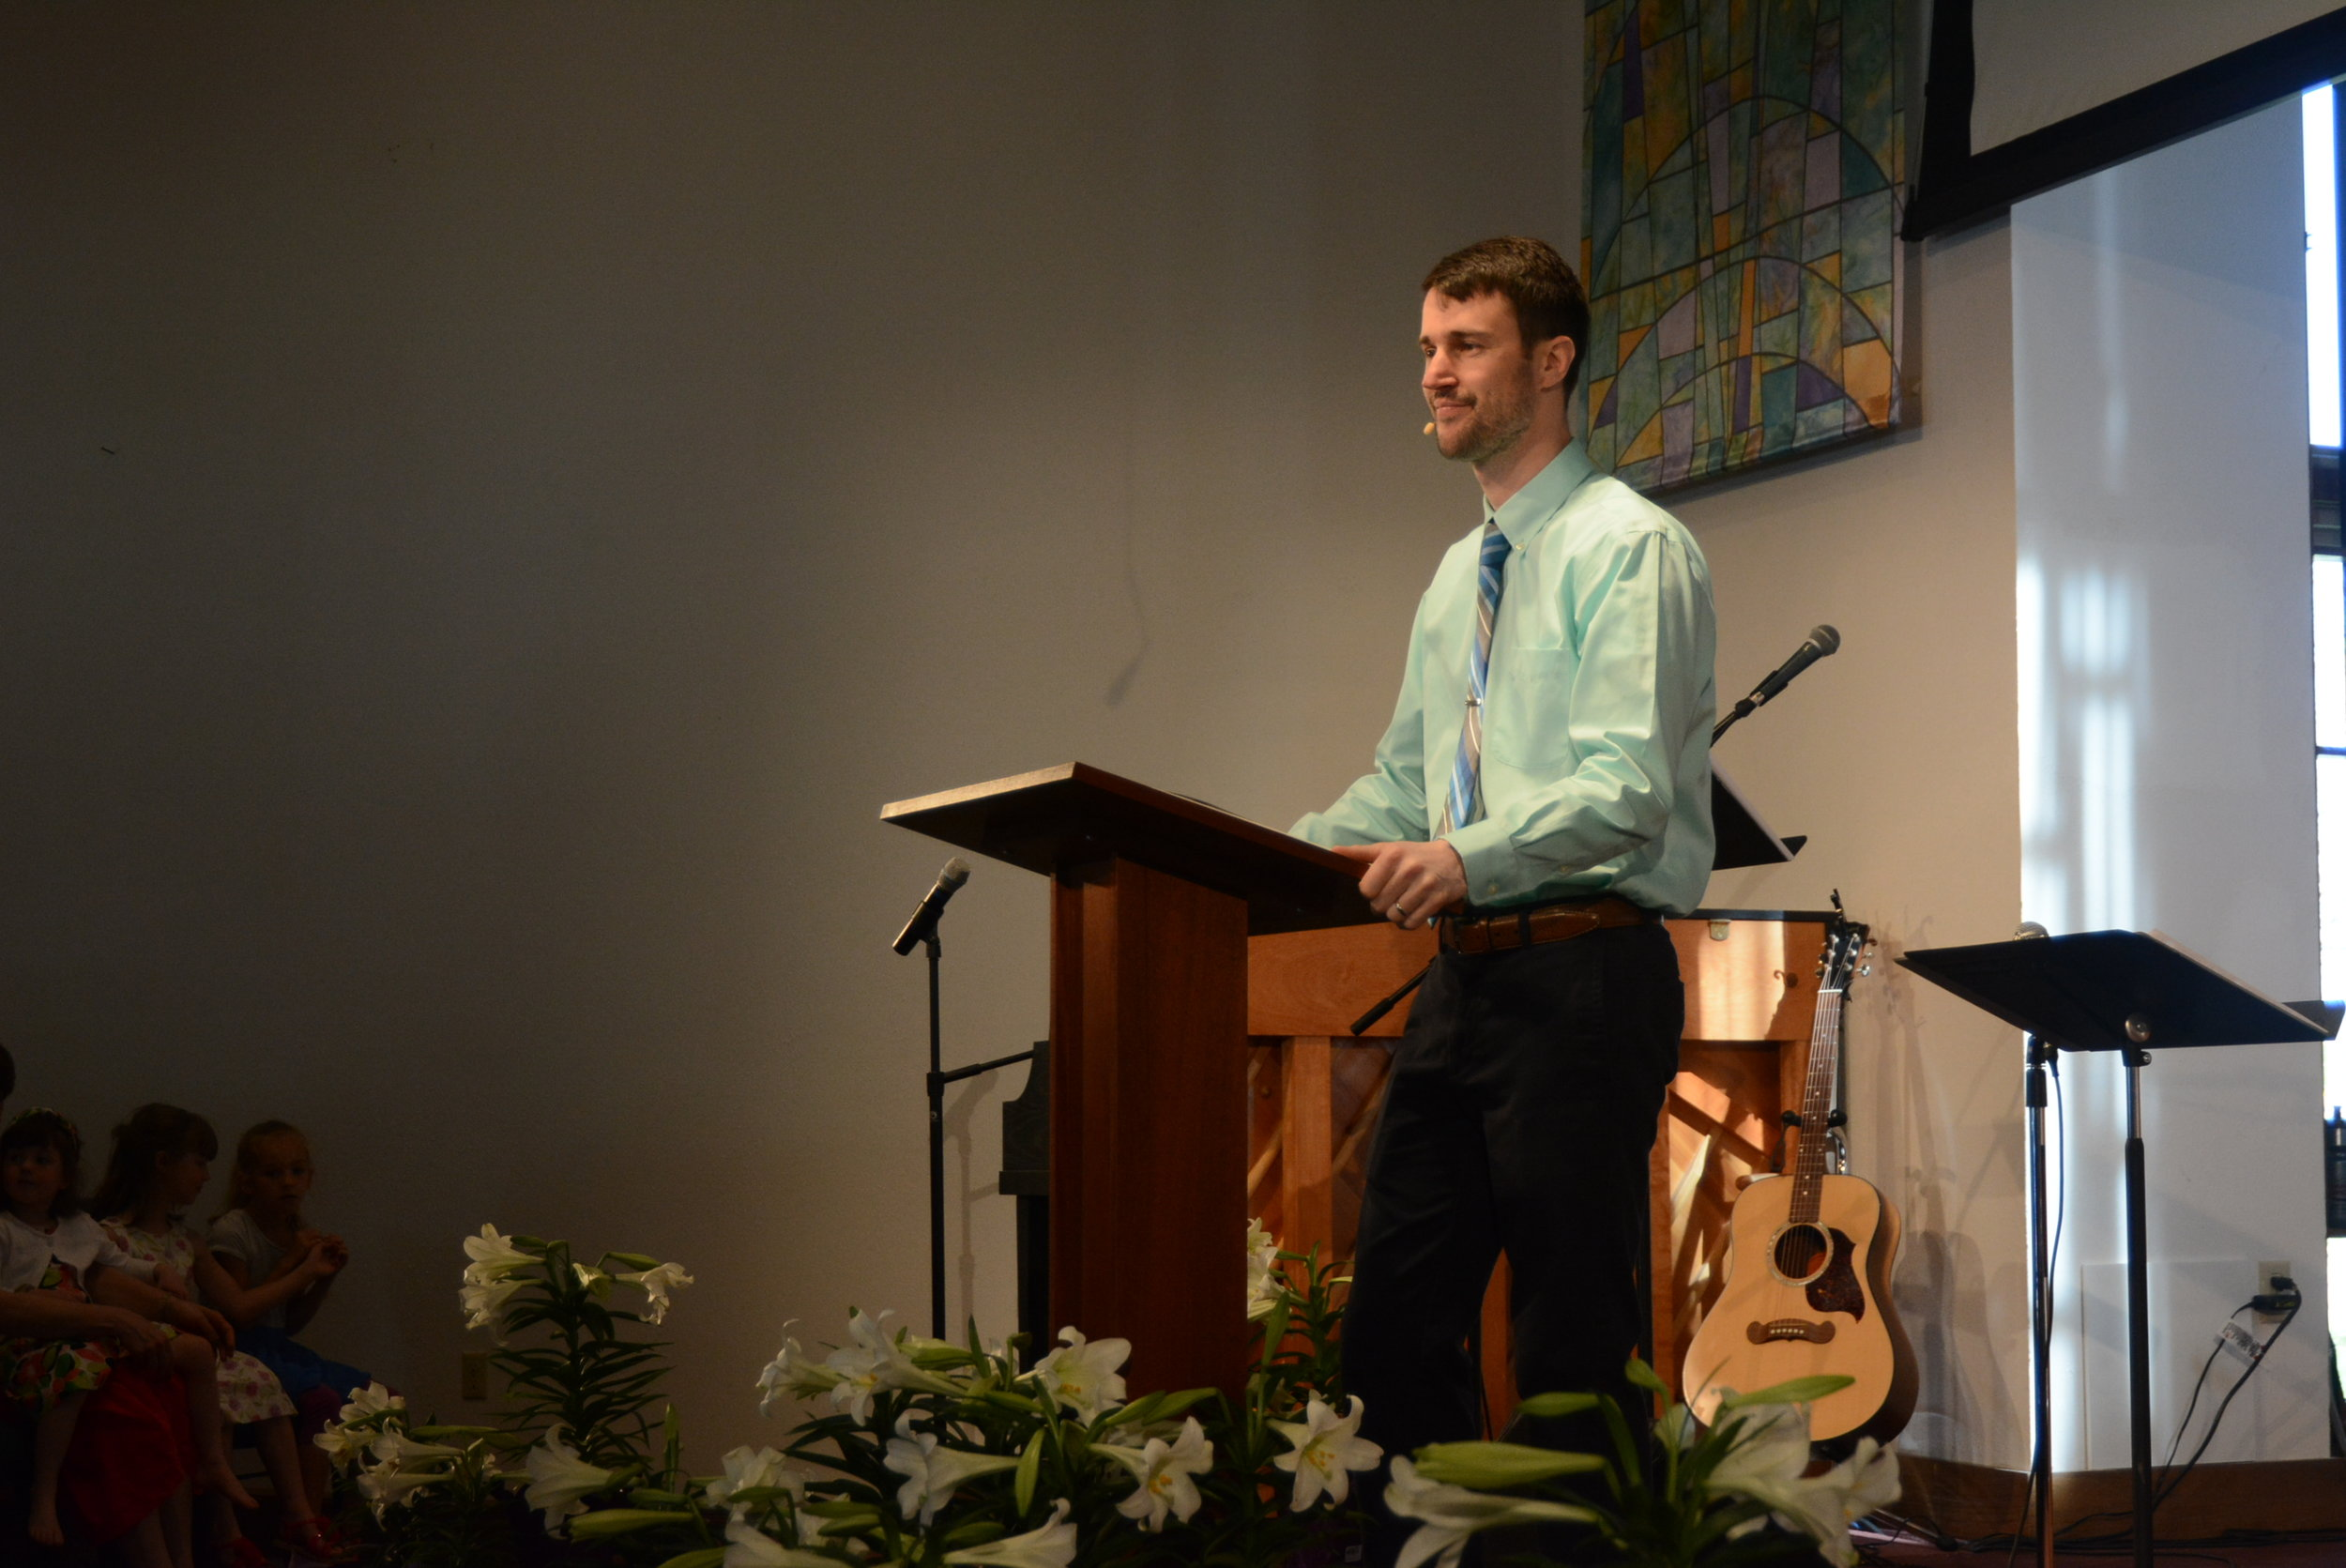 sermons - Check out Pastor Paul's most recent sermon or find one in the archives.